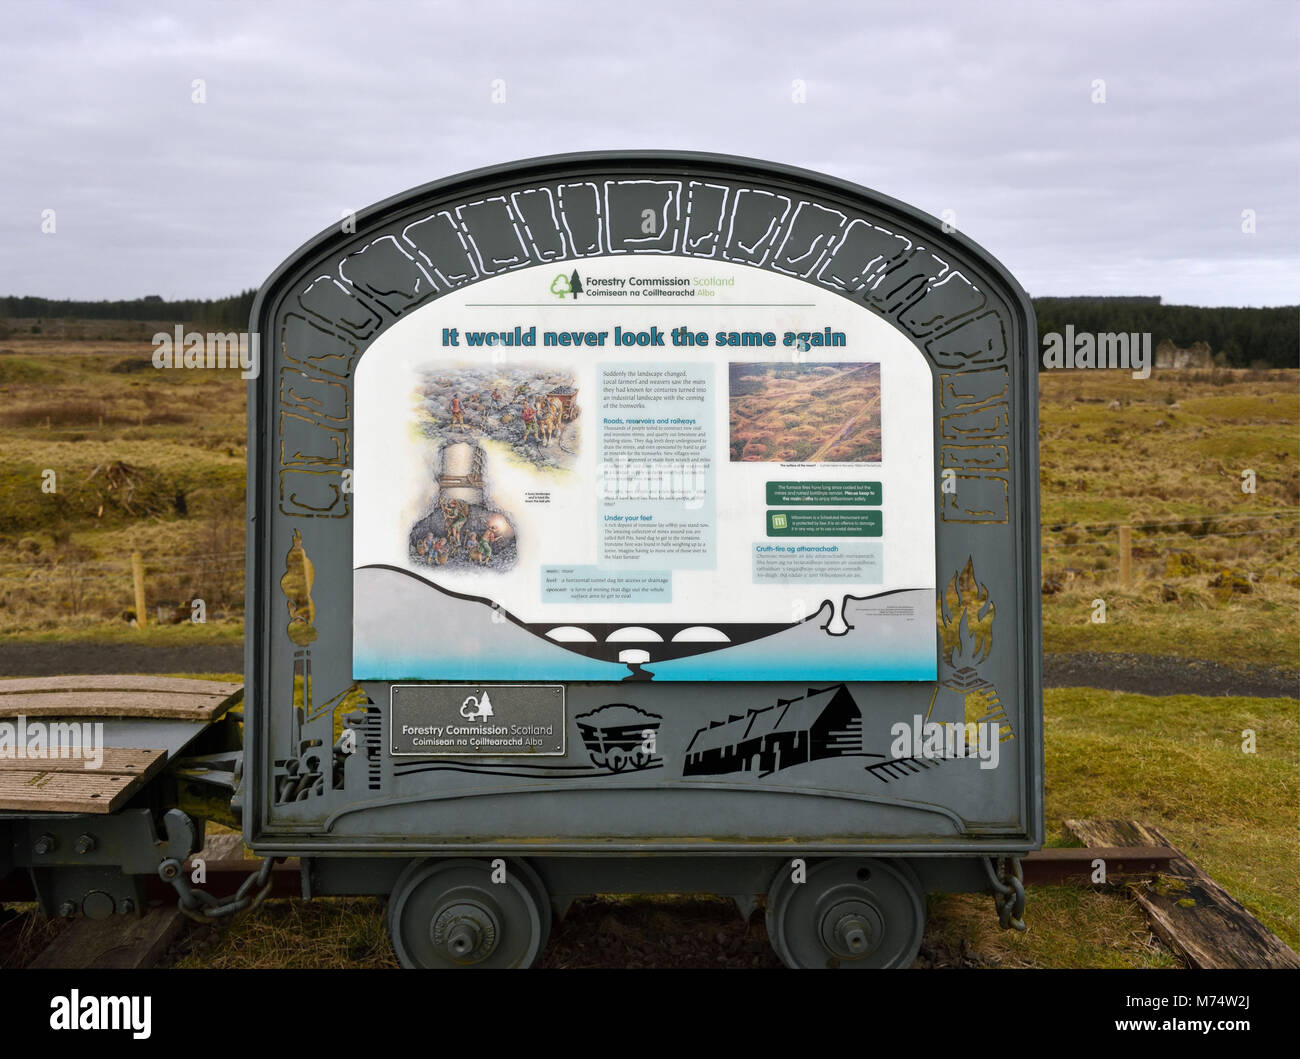 Descriptive signboard. 'It would never look the same again'. Wilsontown, Forth, Lanarkshire, Scotland, United - Stock Image